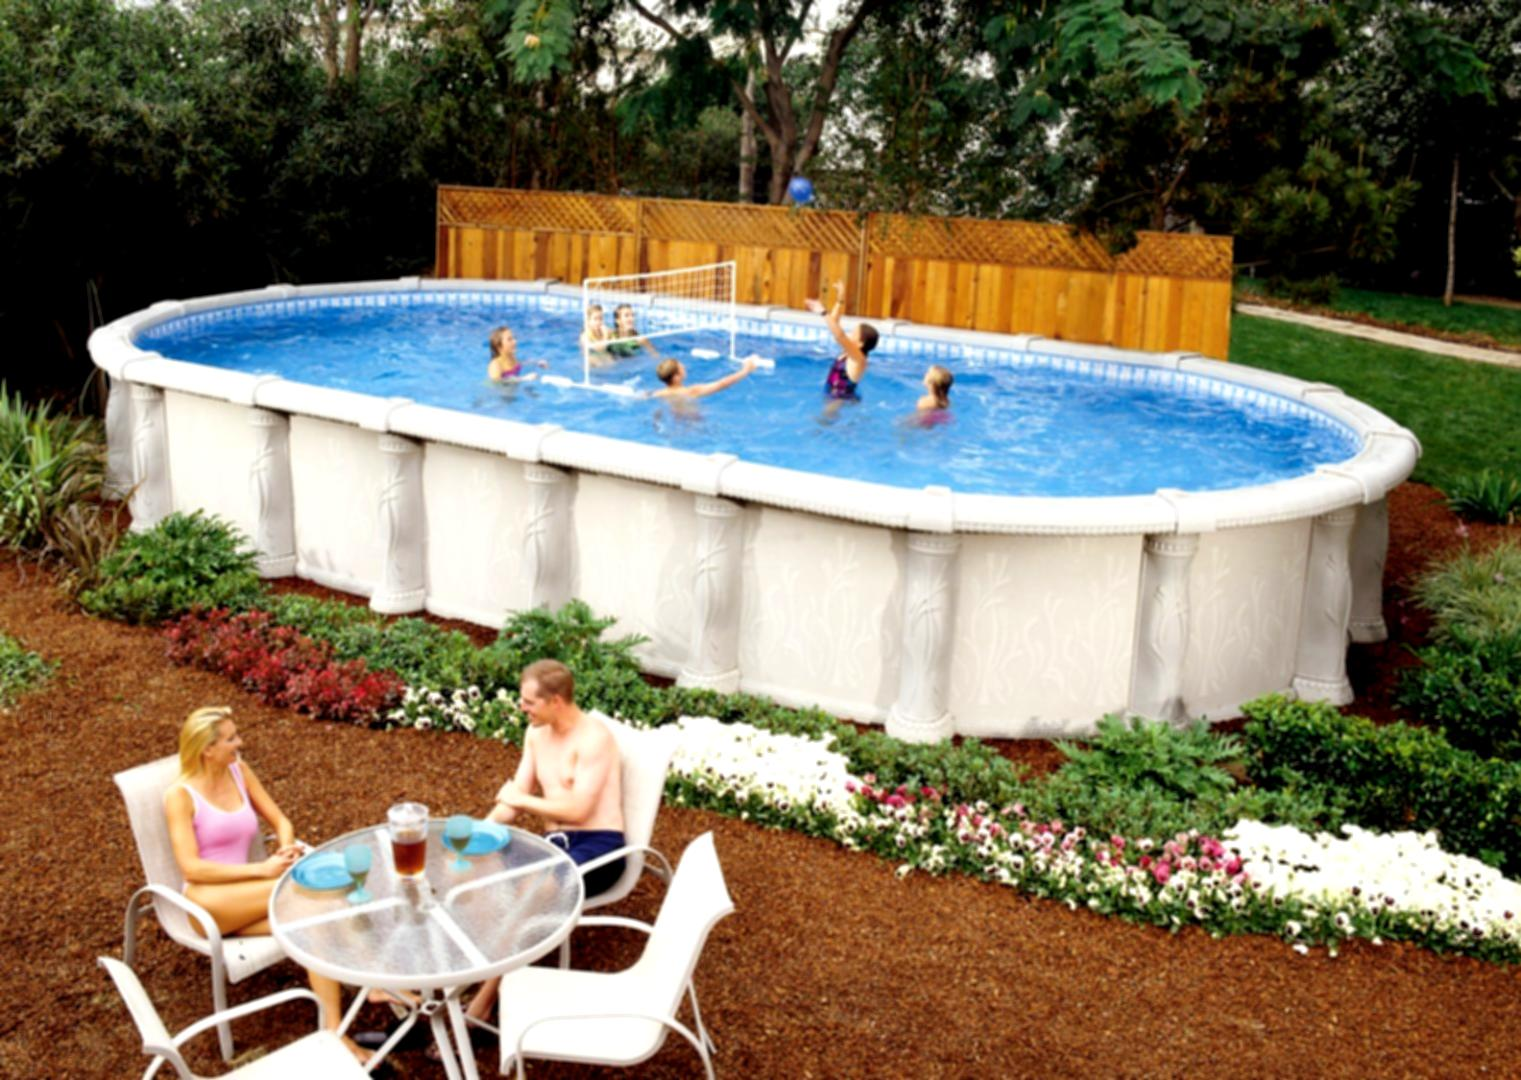 Above Ground Swimming Pool Installation Companies Swimming Pools Photos